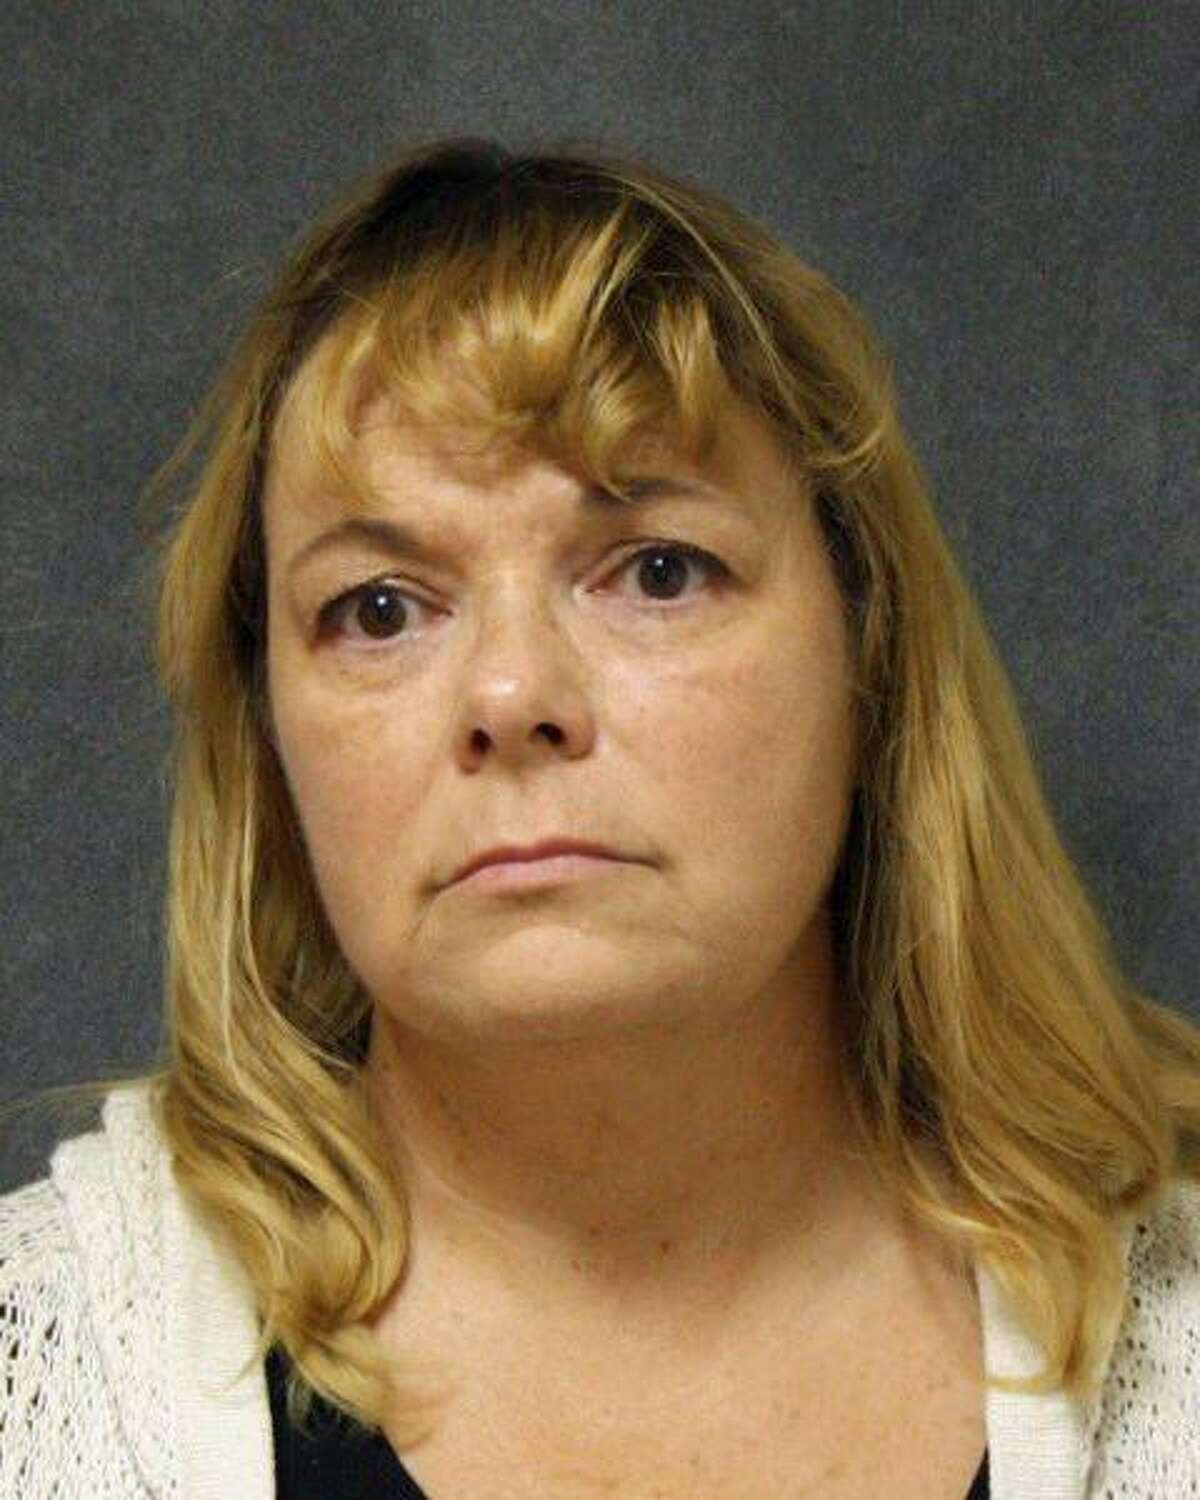 Leslie Laing, 48, of Milford, Conn., was charged with violation of a protective order by after she turned herself in on an active warrant Thursday afternoon, Ansonia police said.